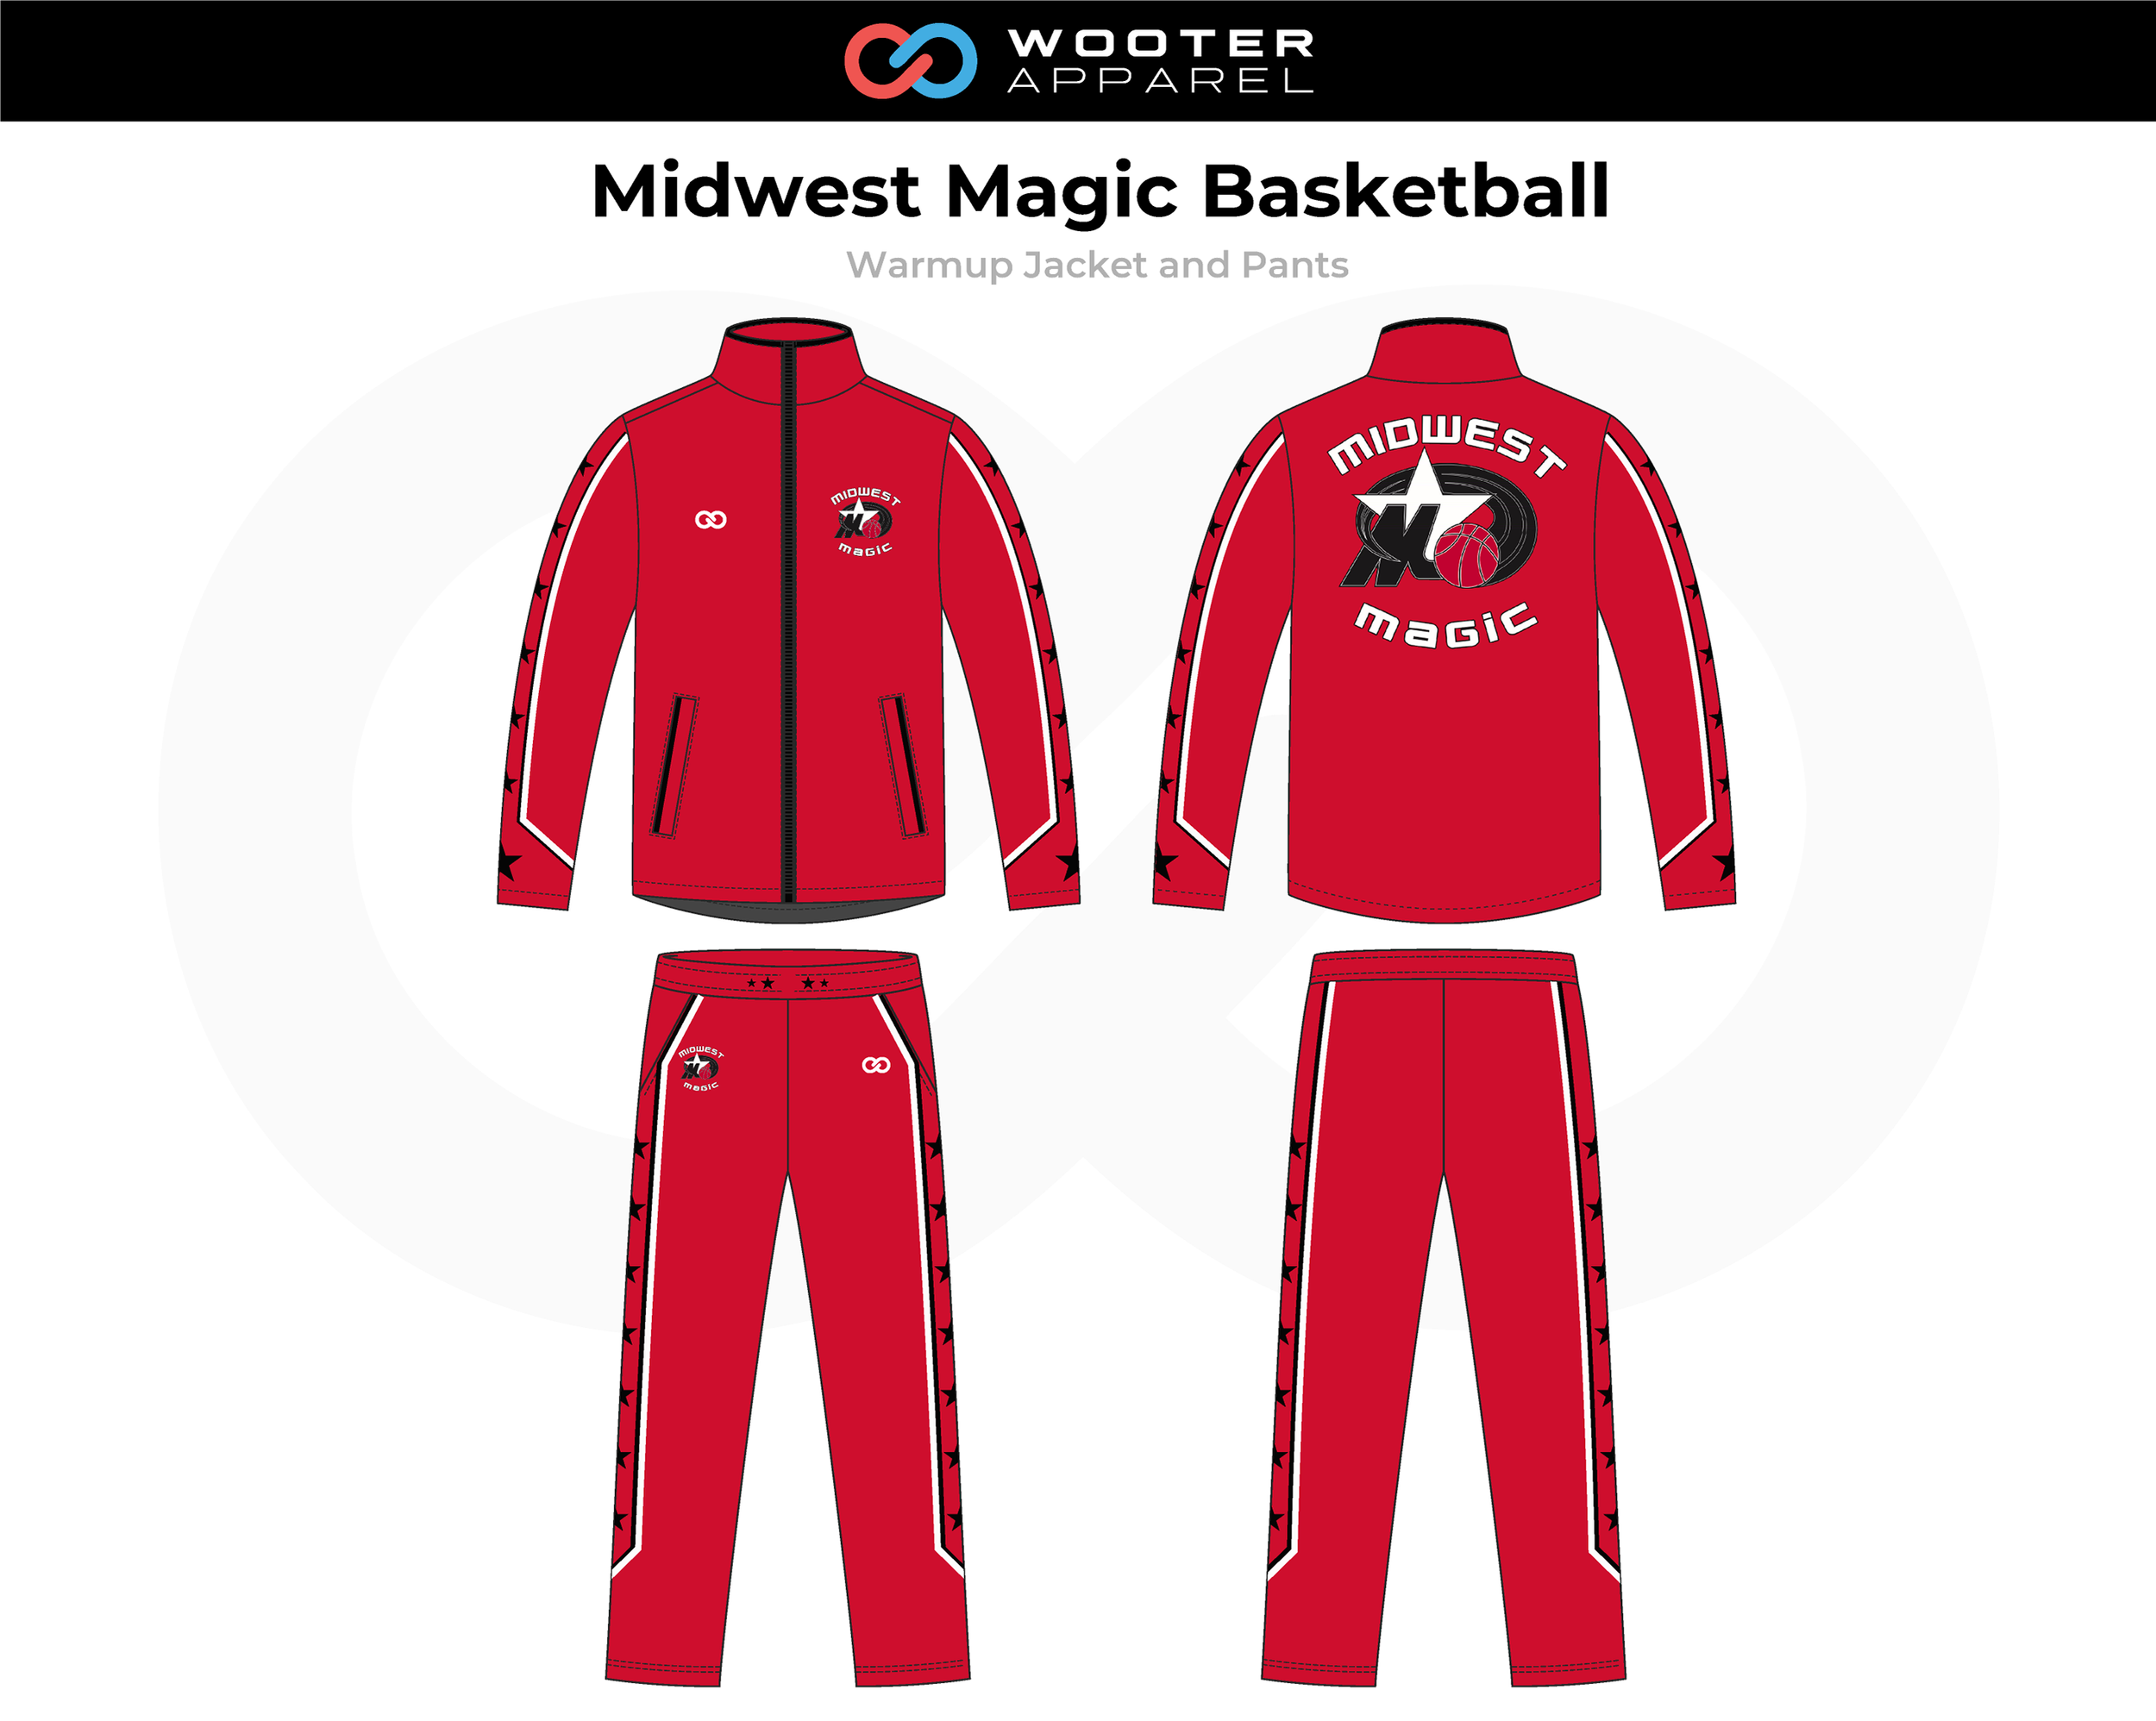 MIDWEST MAGIC Red Black White Basketball Warmup Jacket and Pants